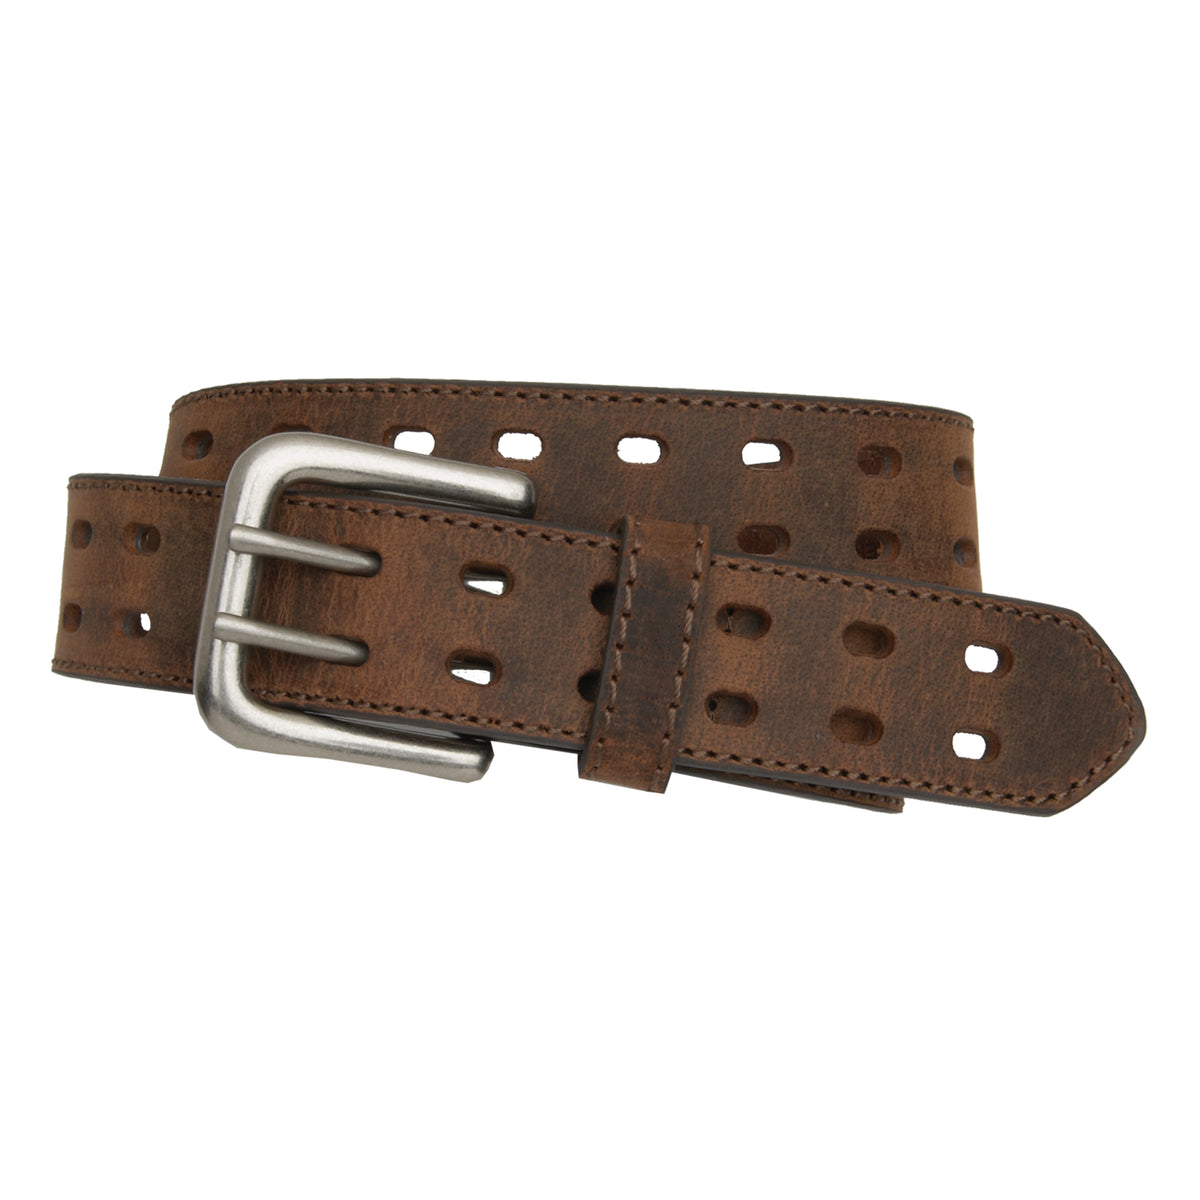 "Kids' 1 1/4"" Double Perforated Belt"